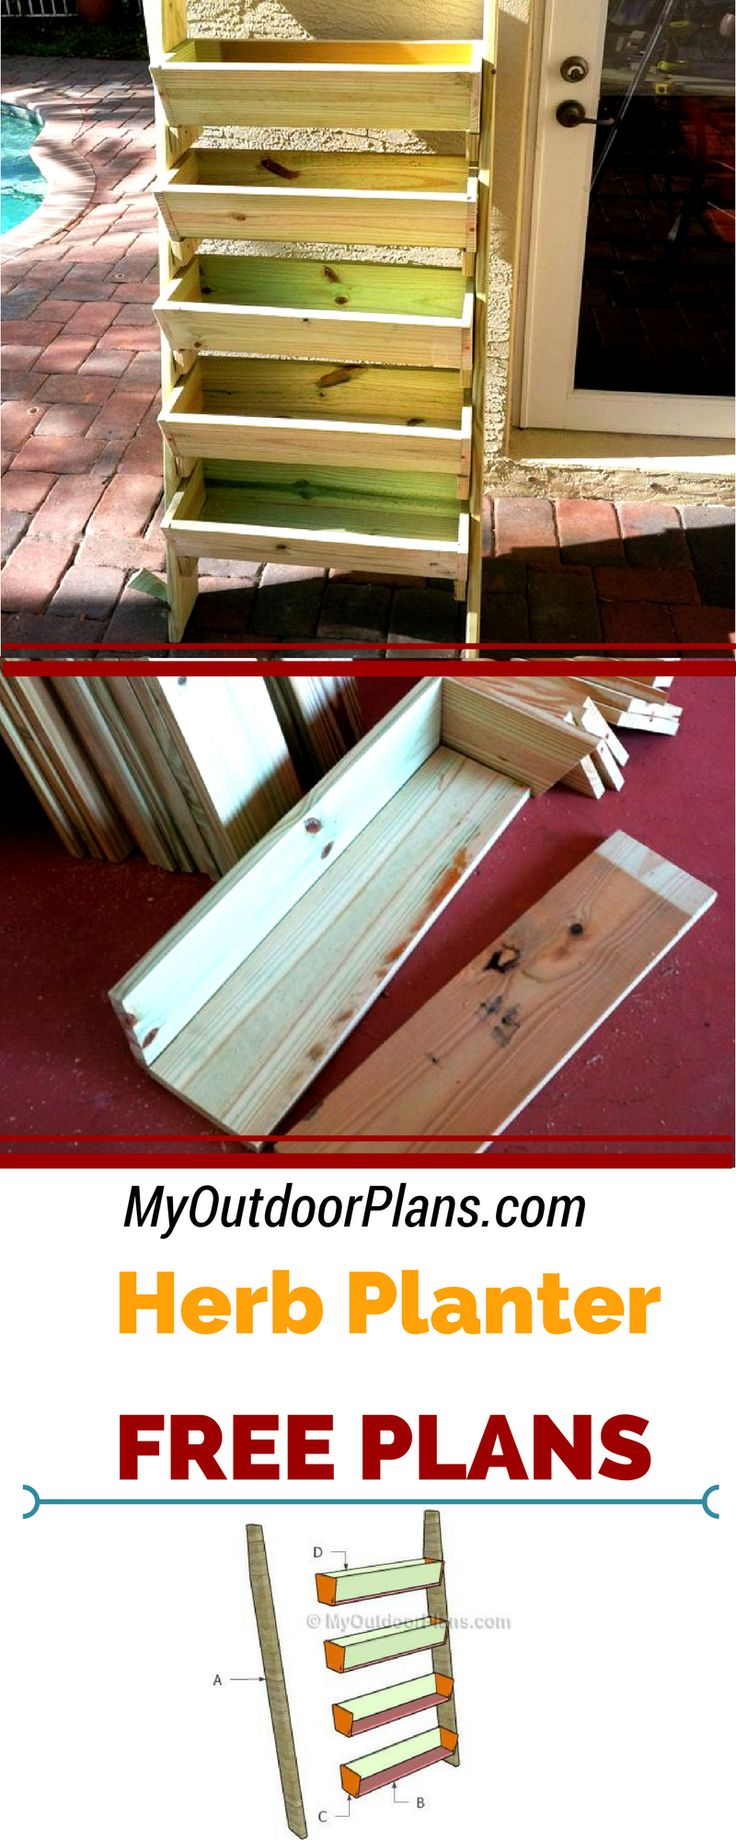 Build a tiered planter box for creating a cheap and simple herb garden! Save a ton of space and build something beautiful with the free herb planter plans at myoutdoorplans.com #diy